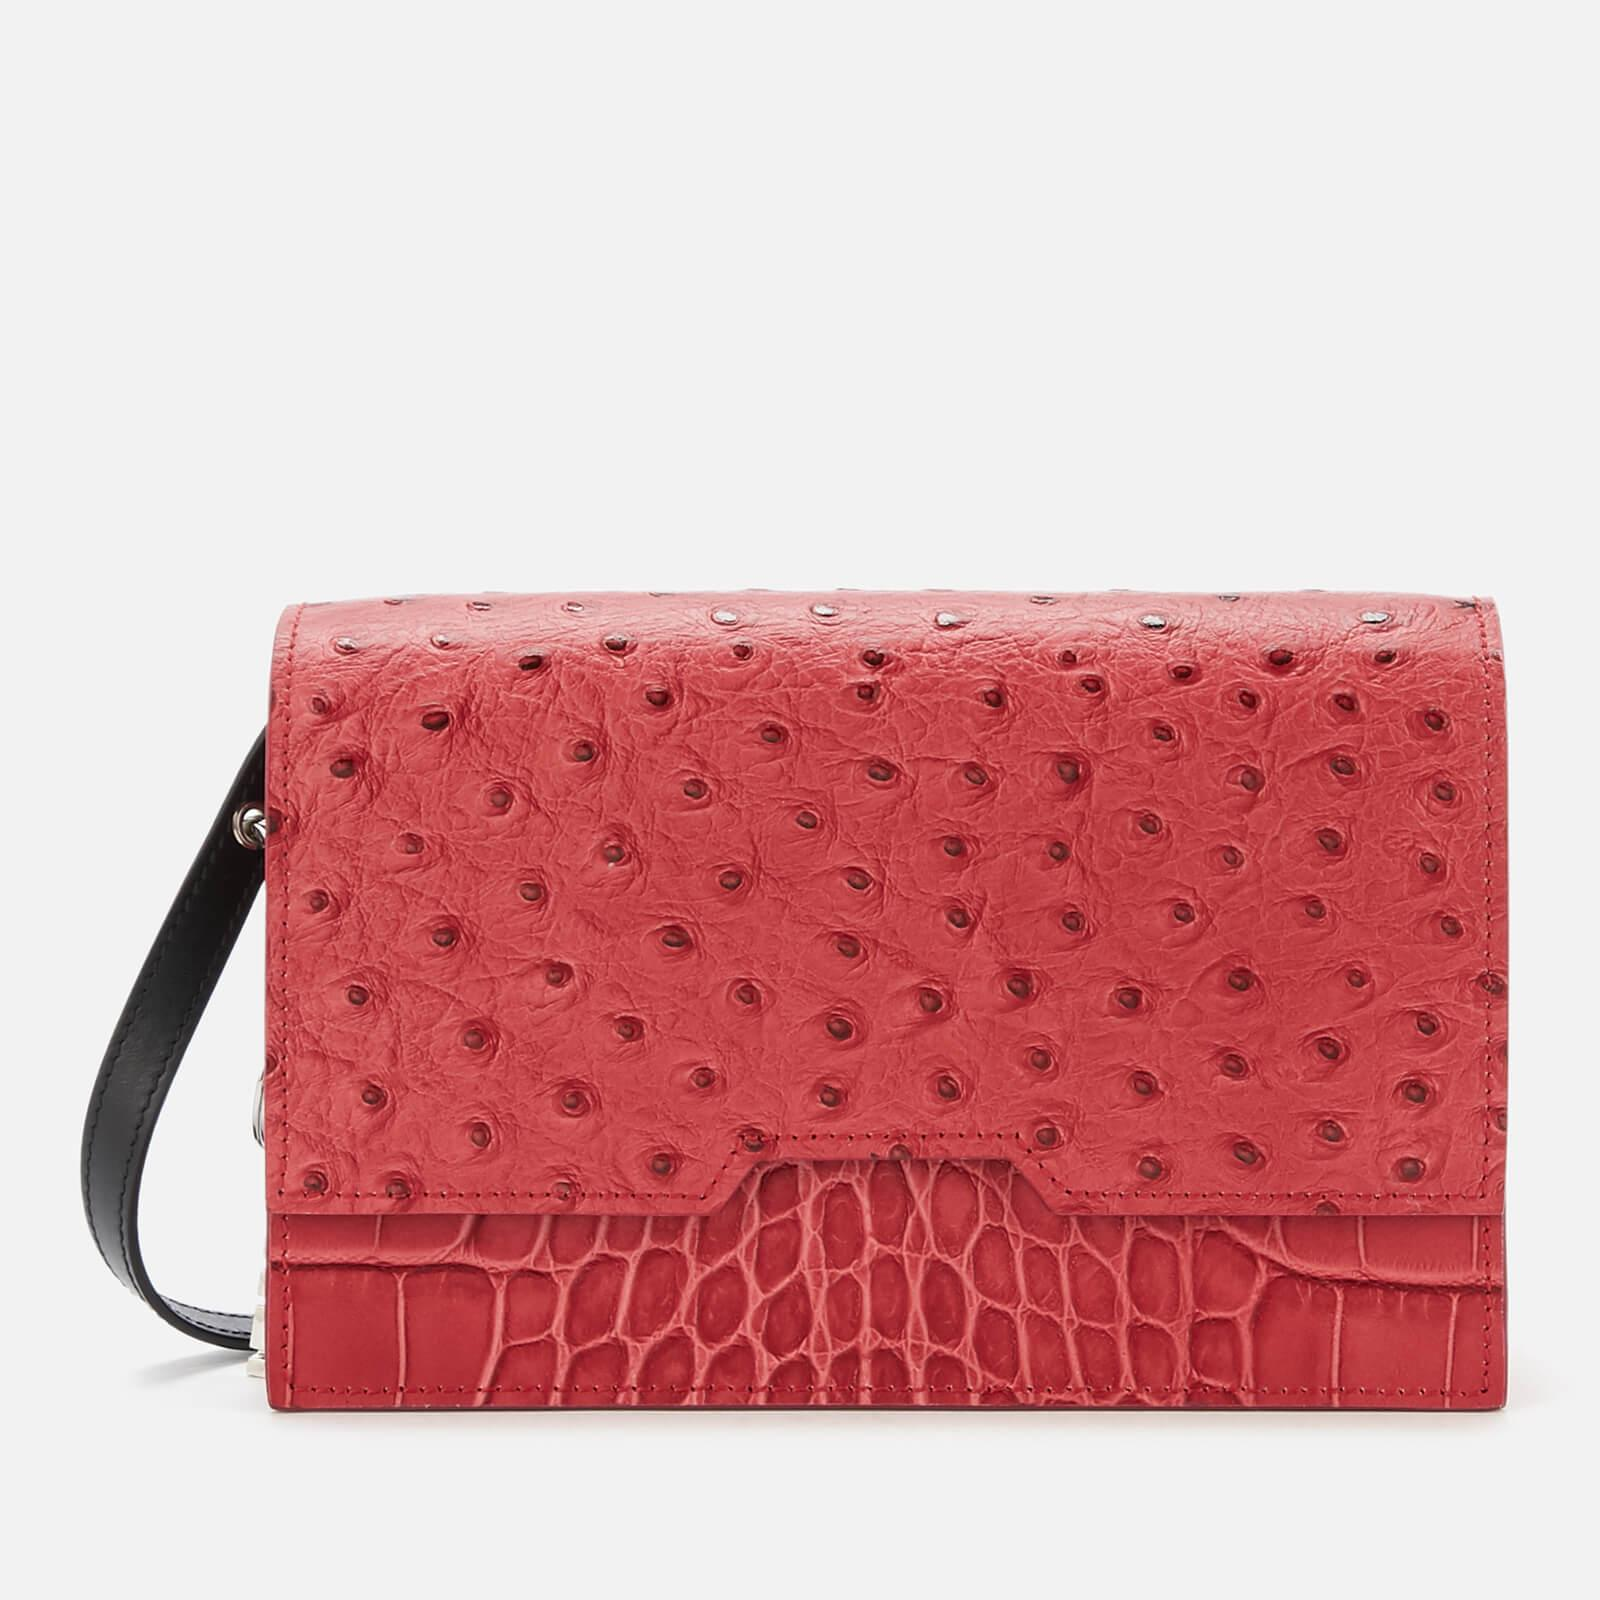 d2d6db6c303e Vivienne Westwood Anglomania Susie Mini Cross Body Bag in Red - Lyst